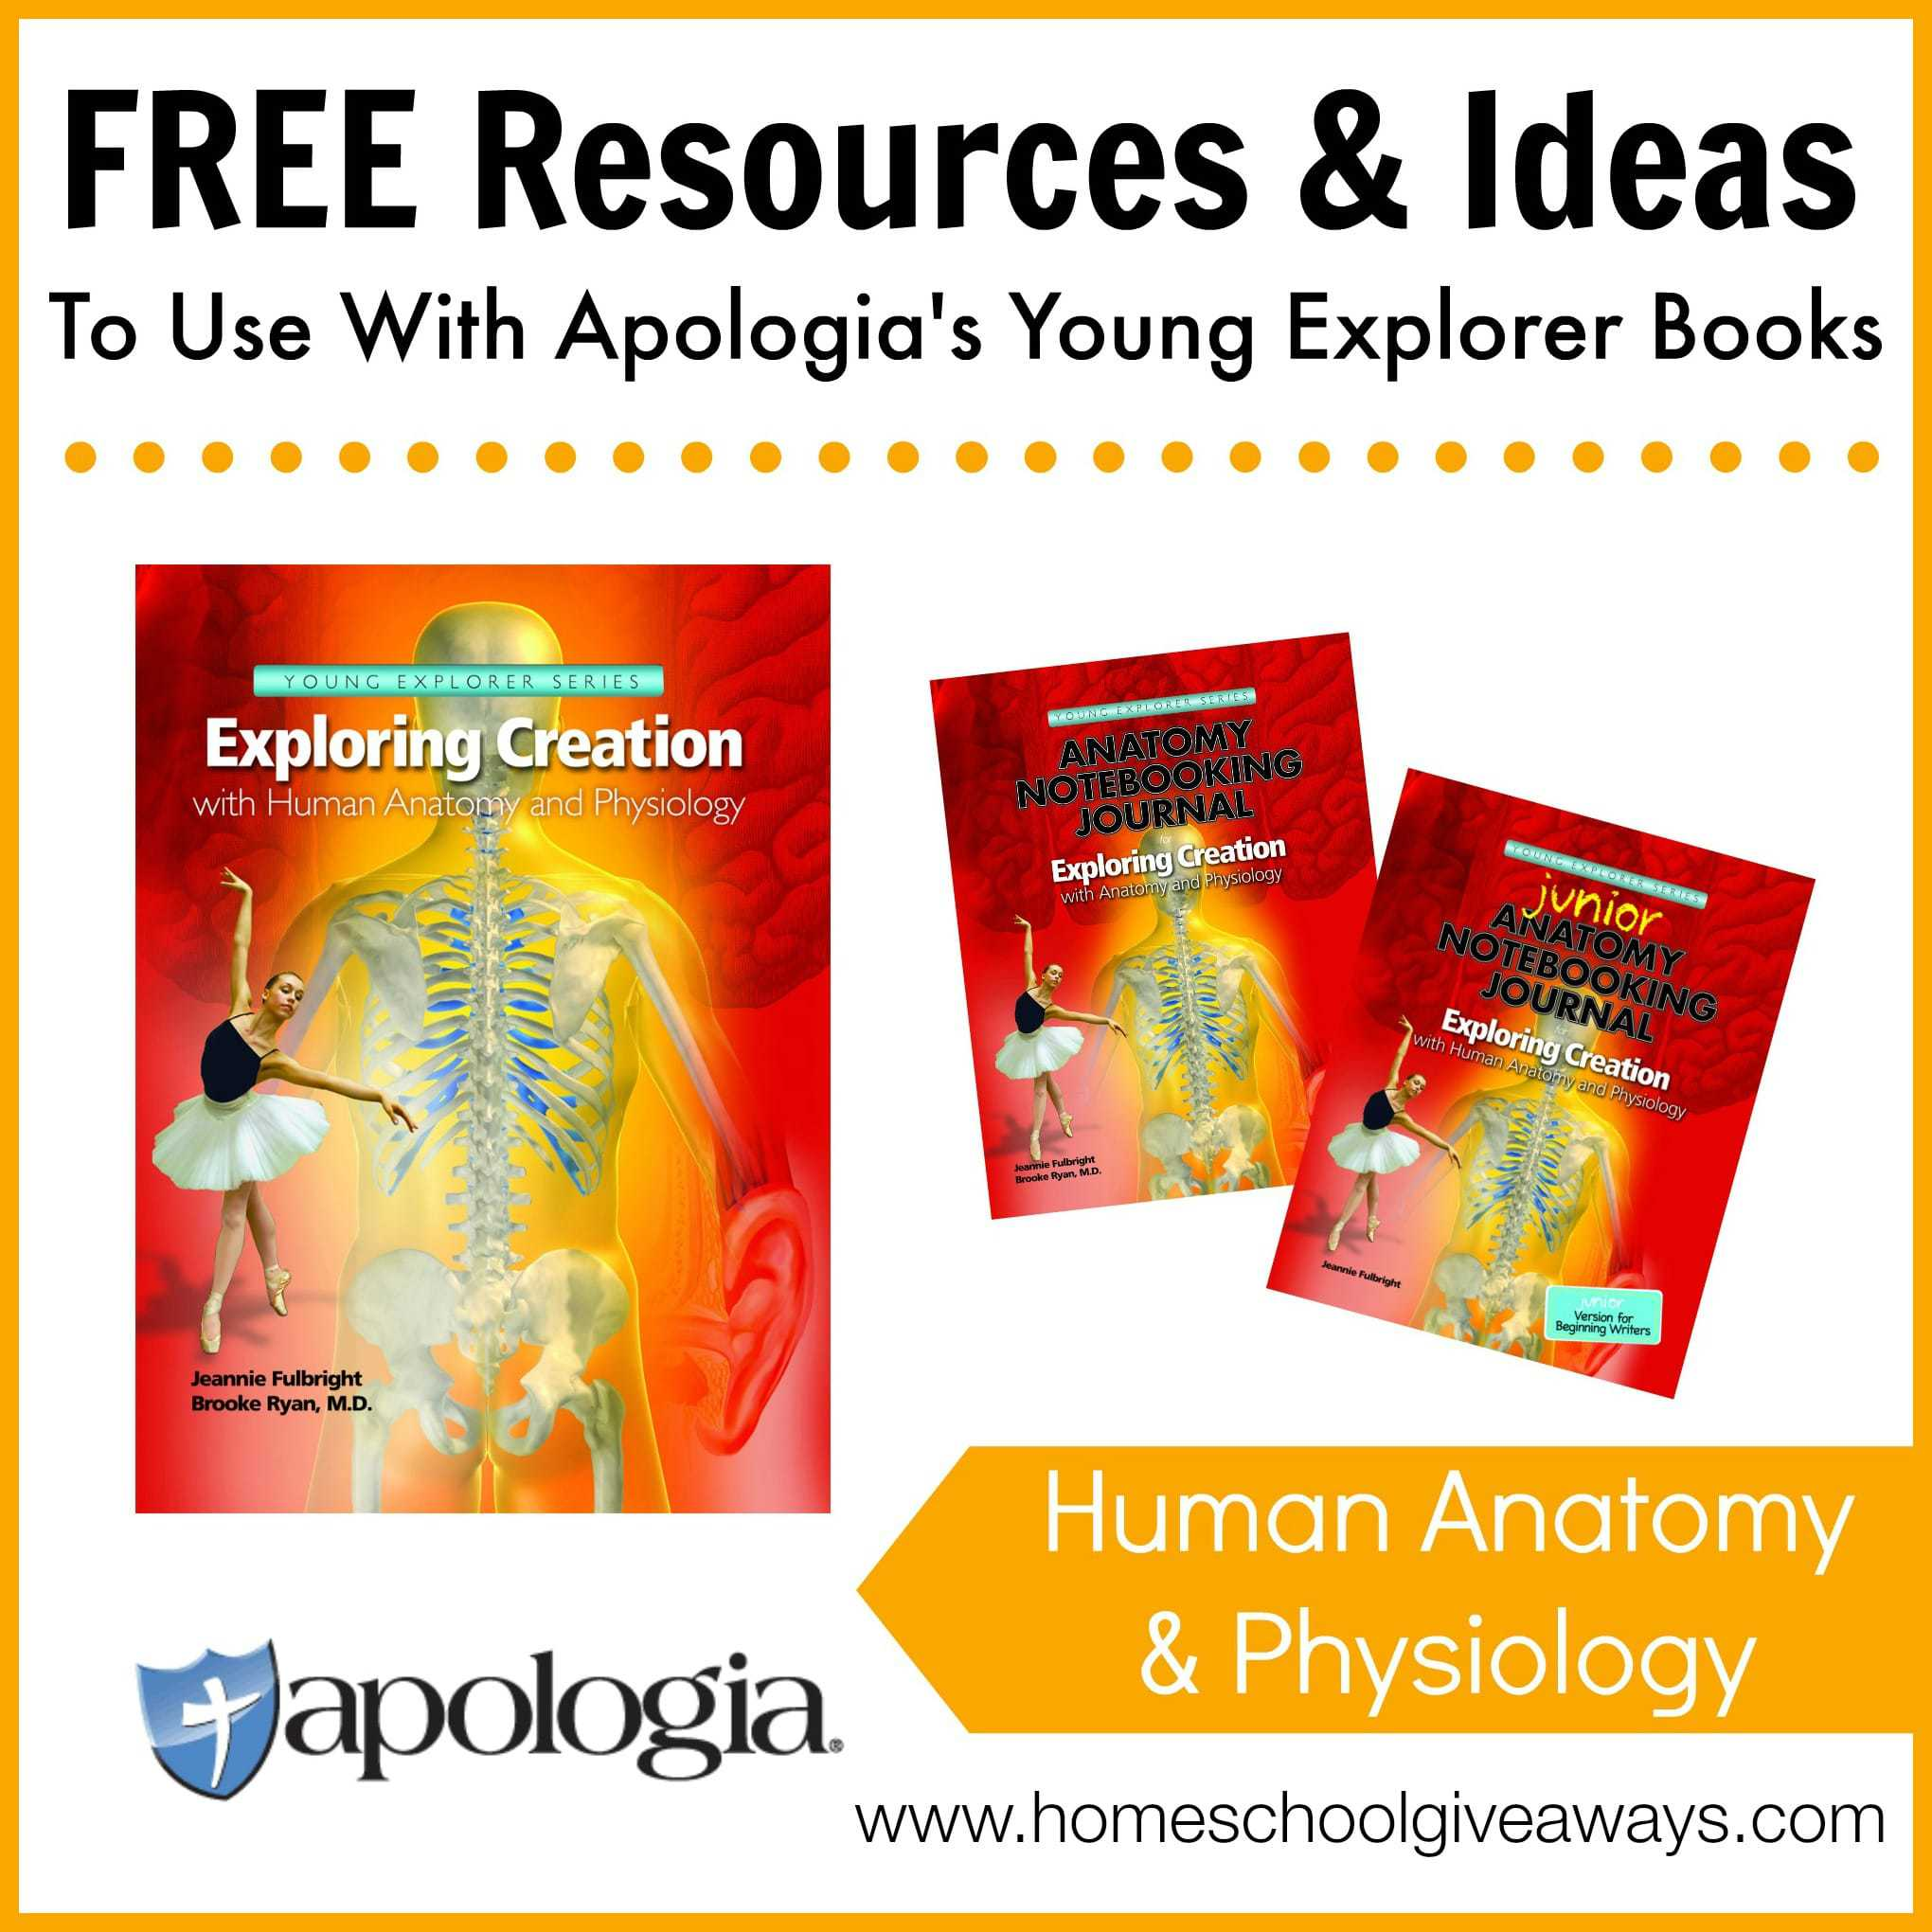 Free Resources And Ideas To Use With Apologias Exploring Creation